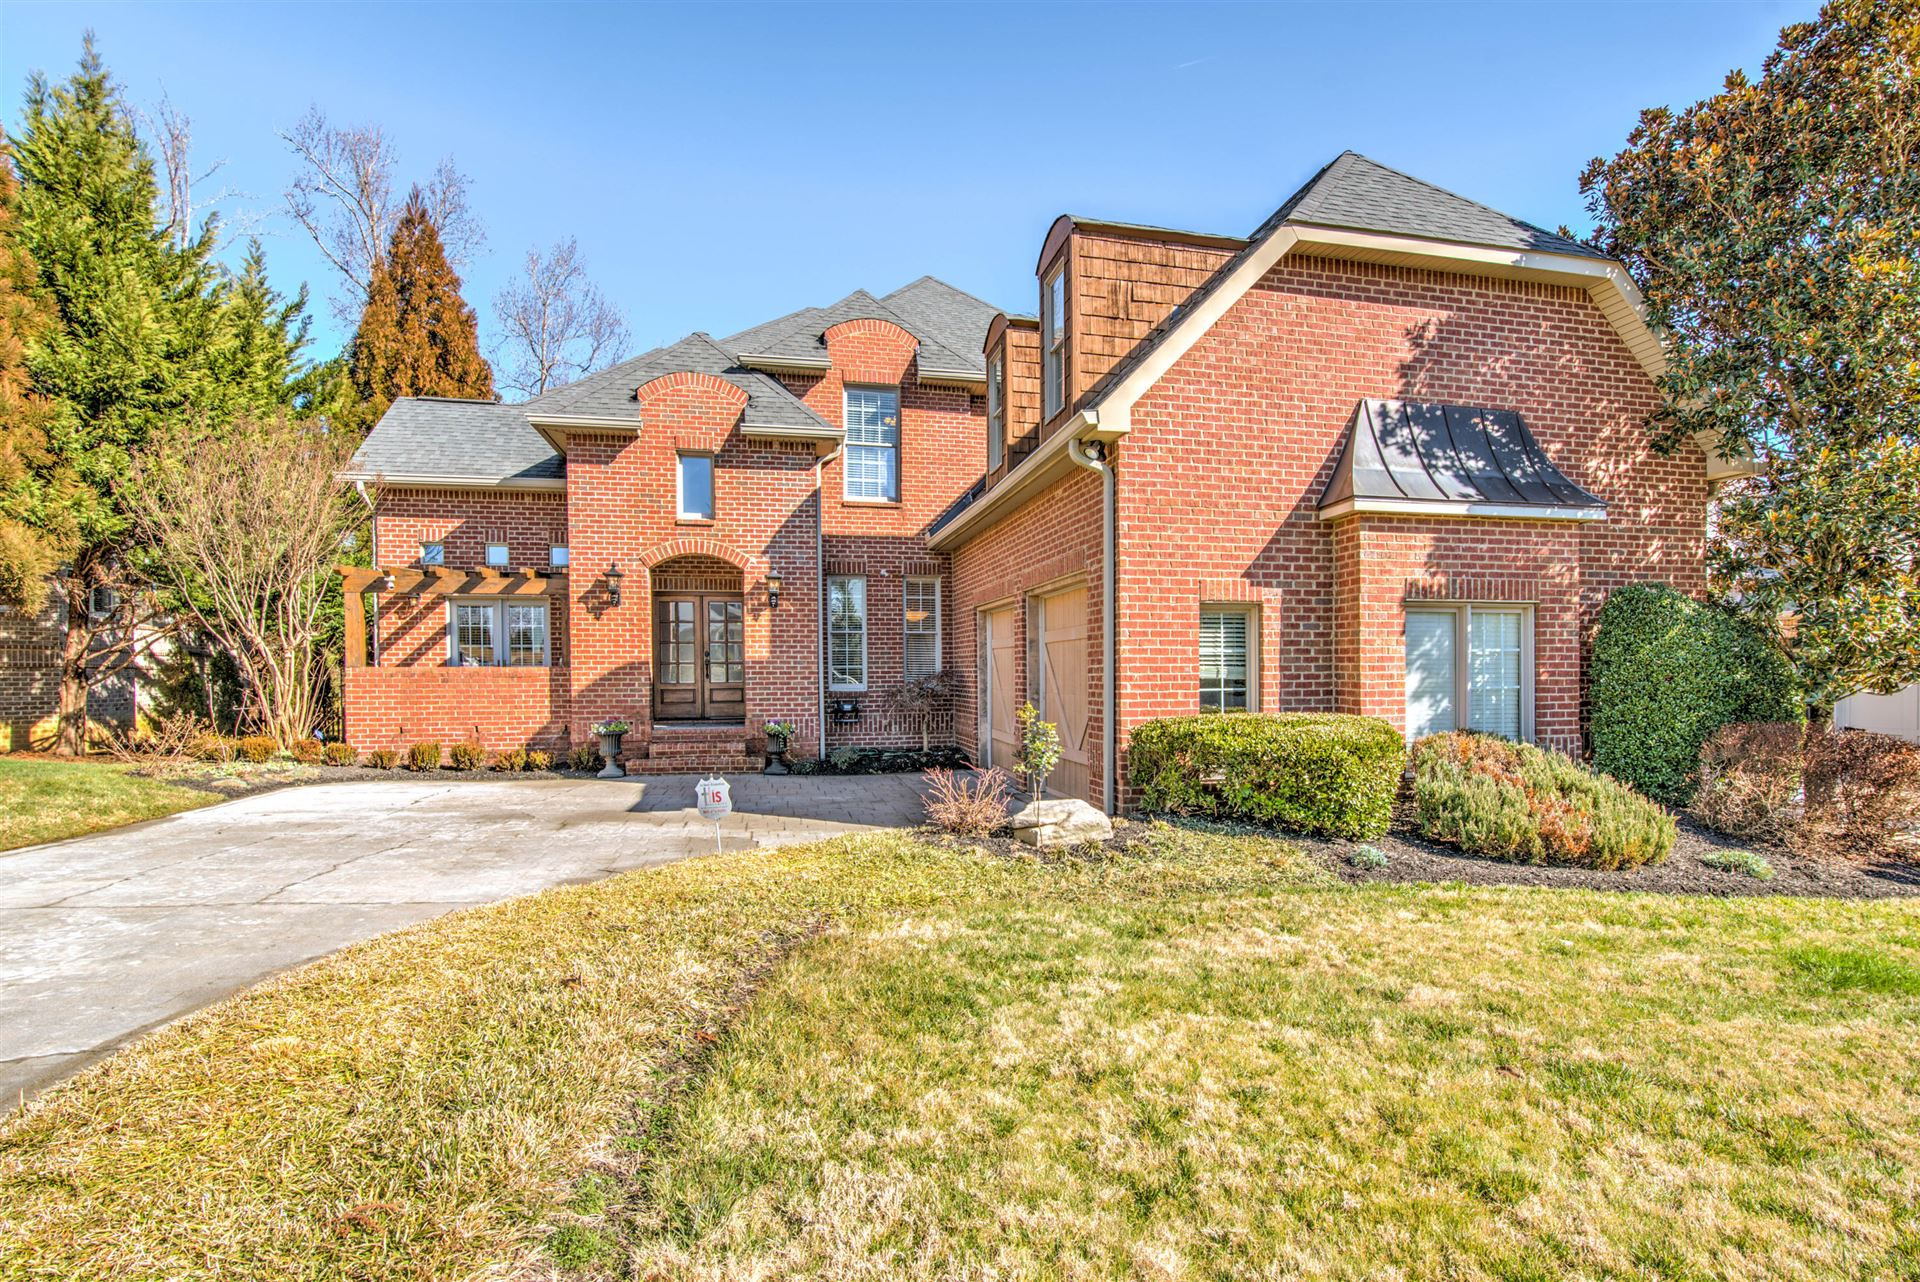 Photo of 12518 Choto Mill Lane, Knoxville, TN 37922 (MLS # 1140954)